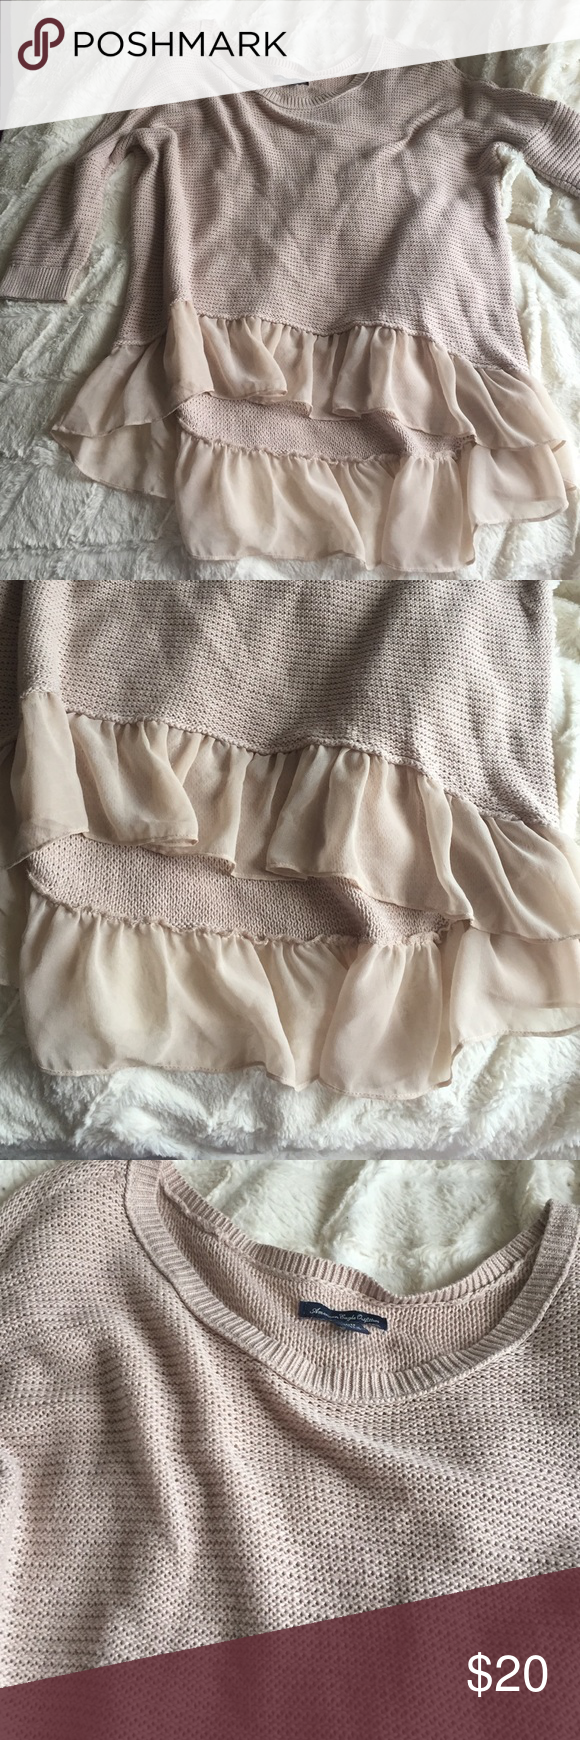 Lightweight sweater top Barely worn; soft baby pink w chiffon ruffle. Front is higher than back American Eagle Outfitters Tops